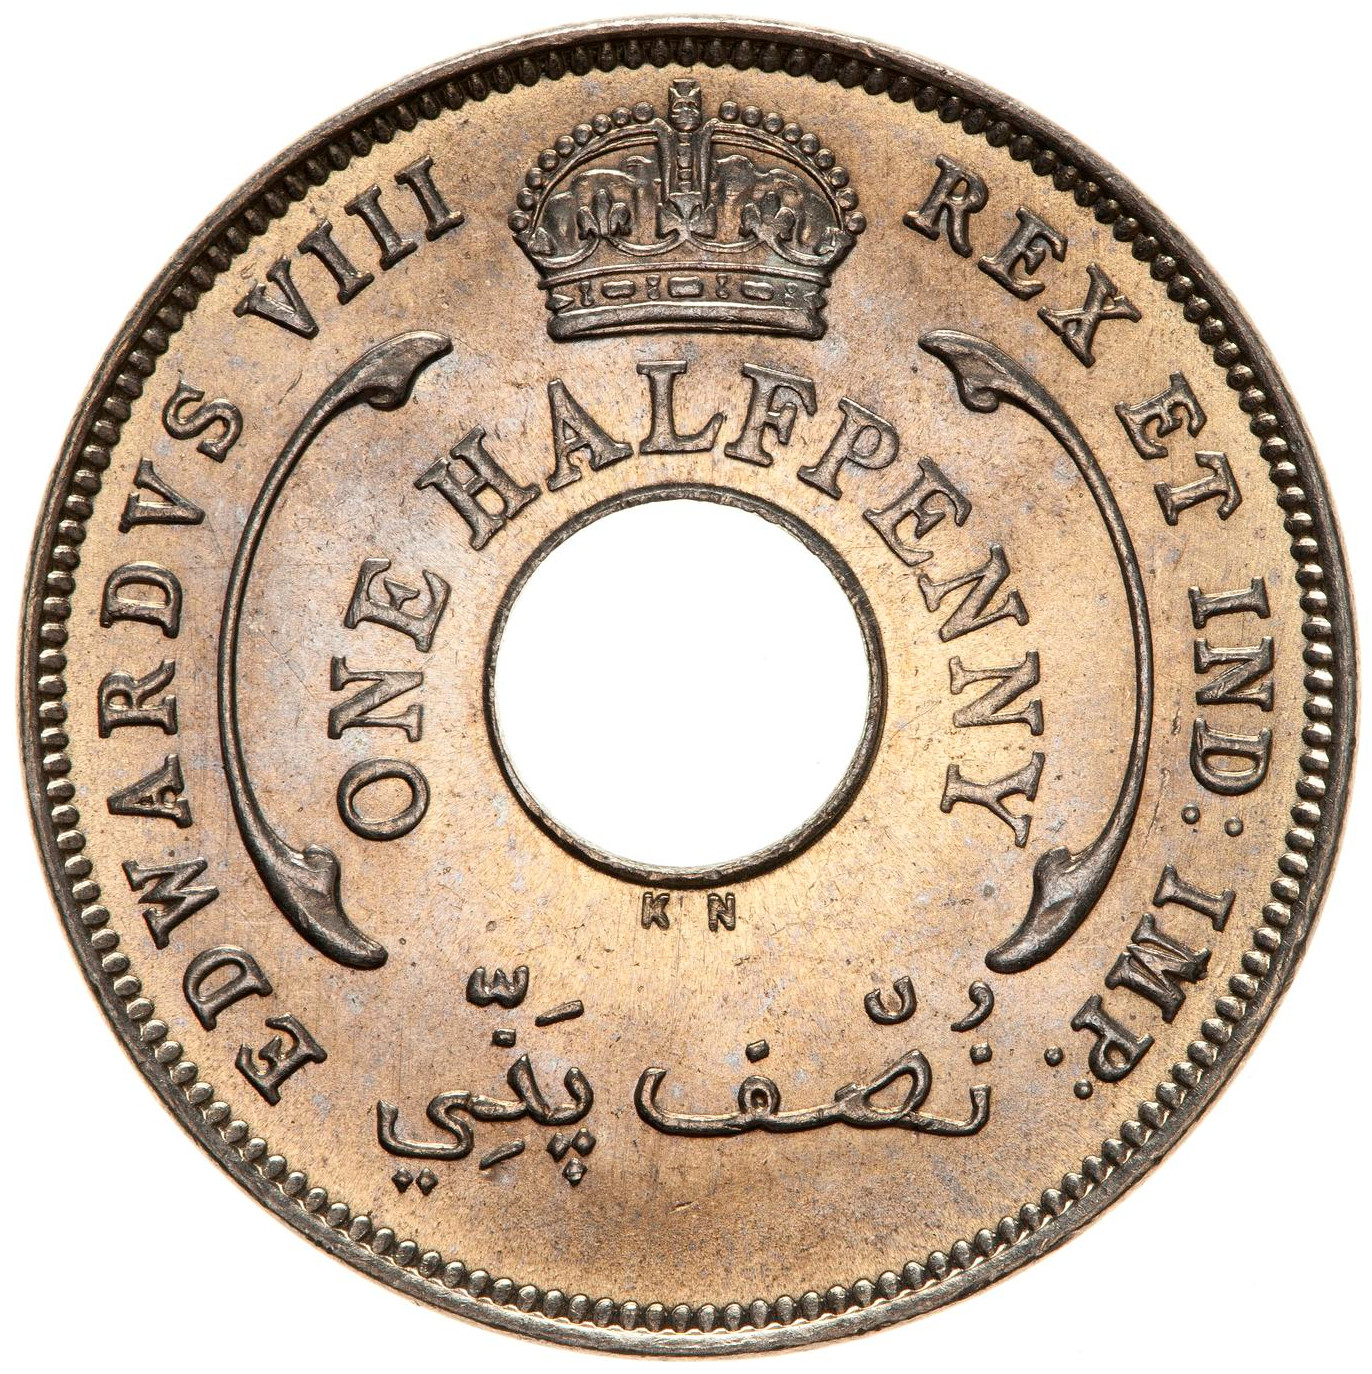 Halfpenny: Photo Coin - 1/2 Penny, British West Africa, 1936